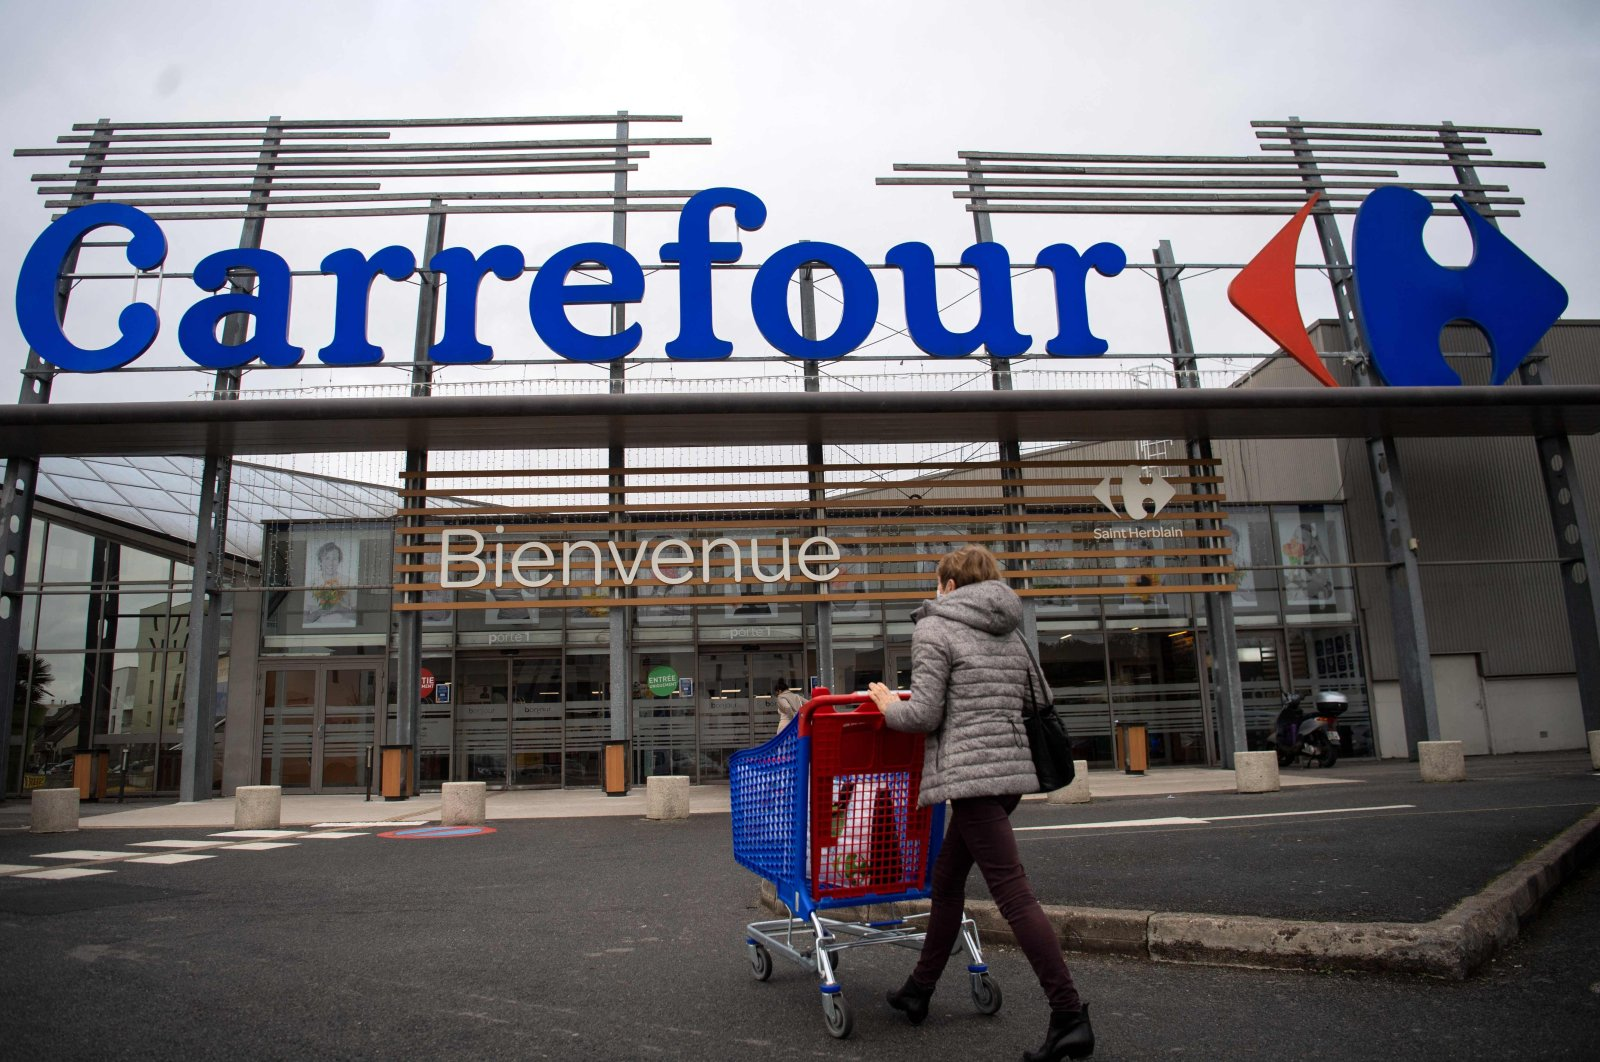 A woman enters a French retail giant Carrefour supermarket in Saint-Herblain, outside Nantes, France, Jan. 13, 2021. (AFP Photo)